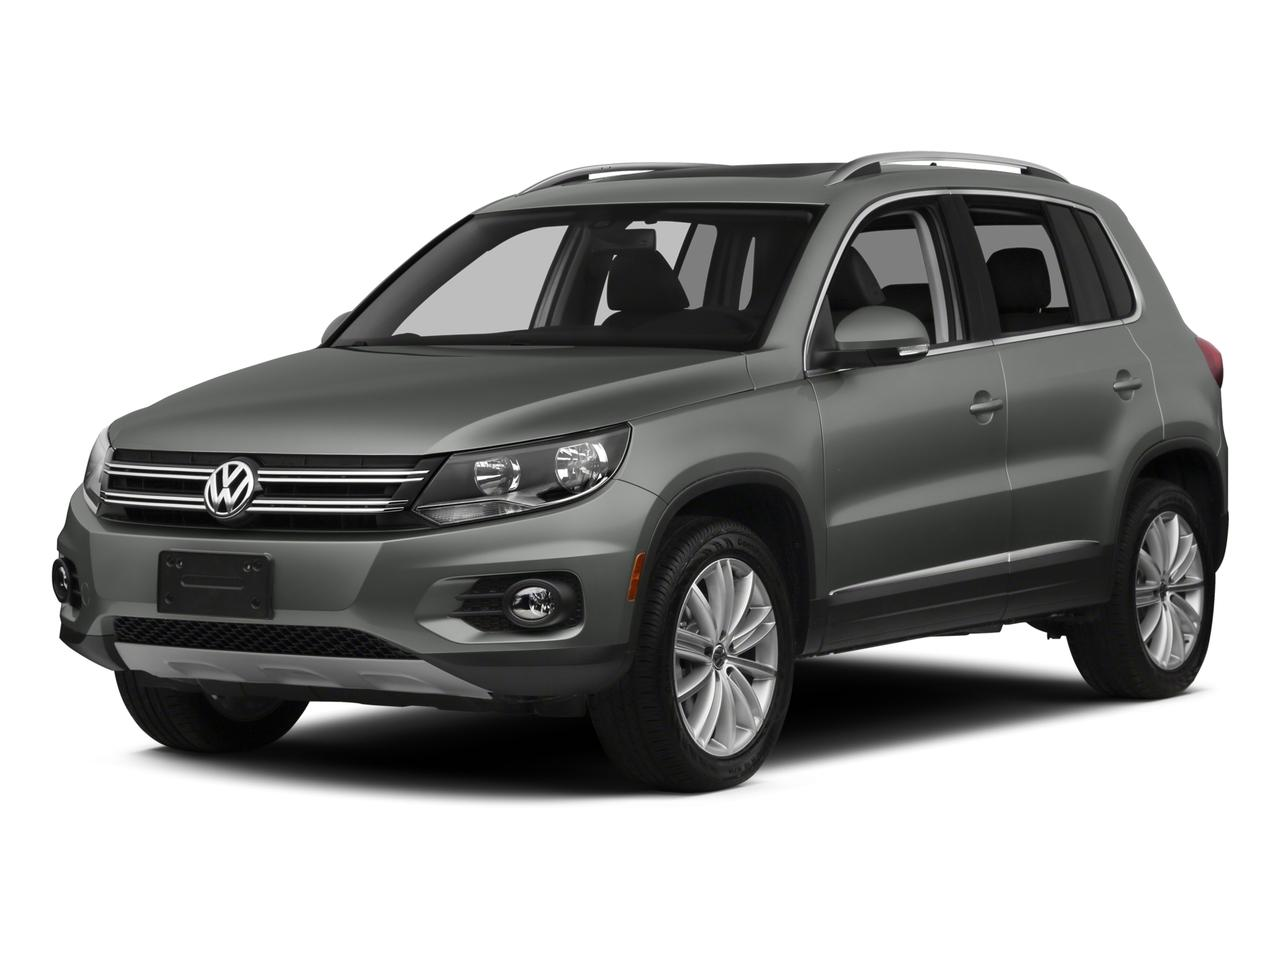 2015 Volkswagen Tiguan Vehicle Photo in Bowie, MD 20716